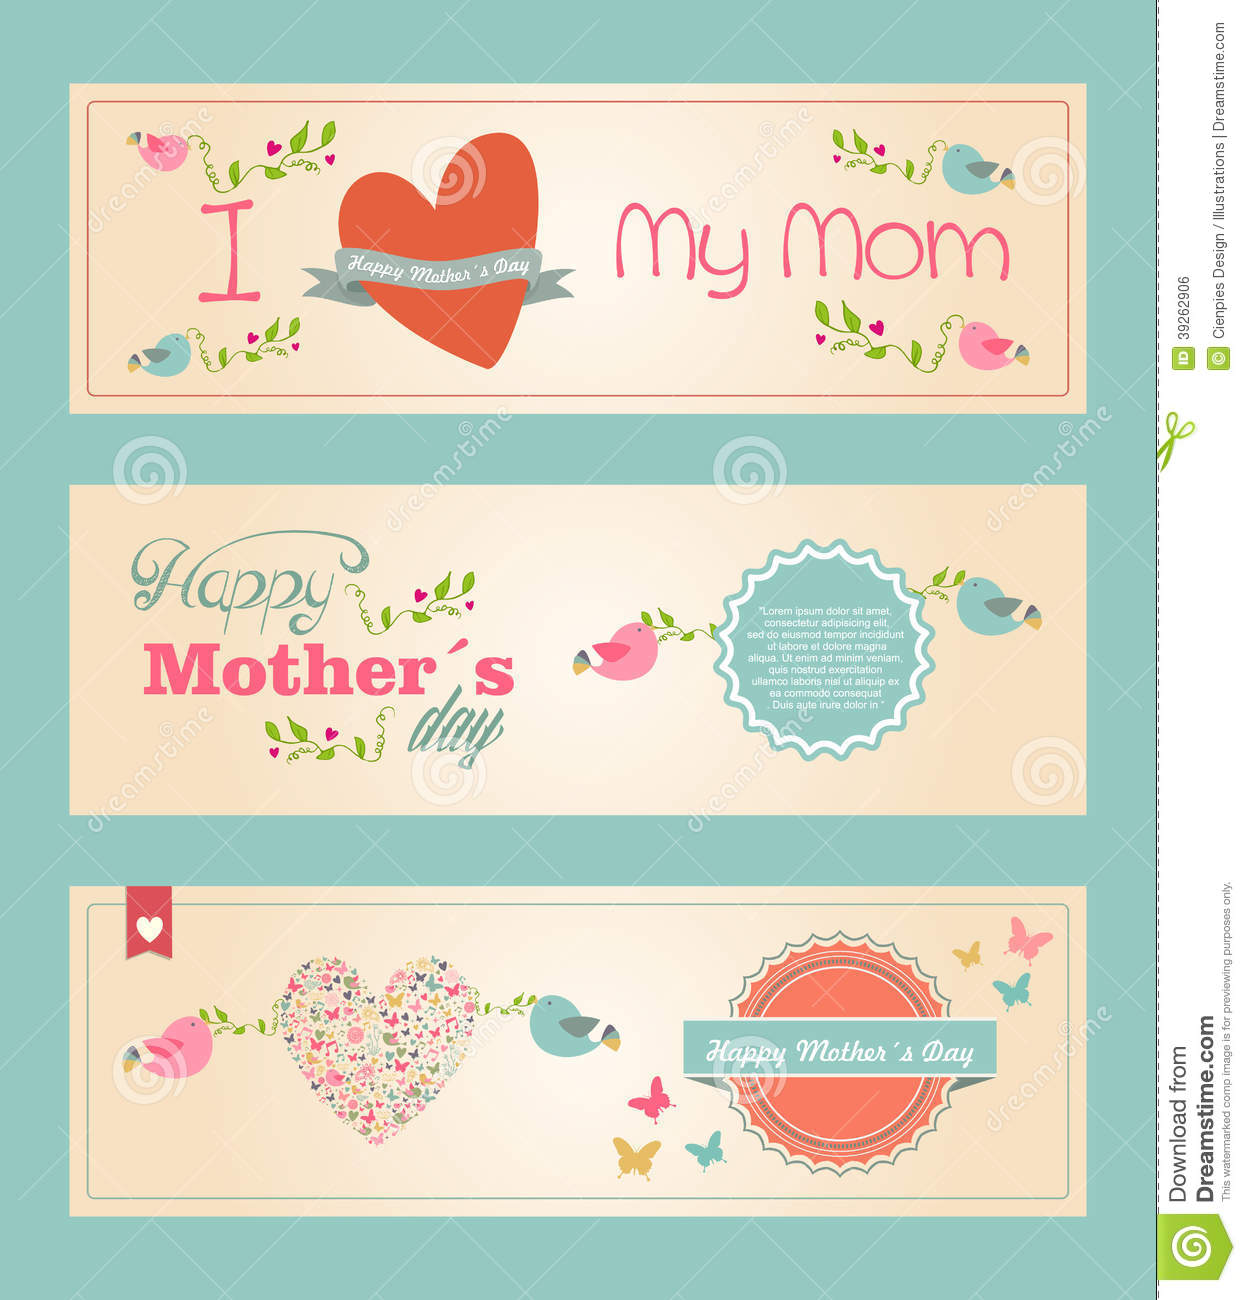 Happy Mothers Day Banner Free Clipart.